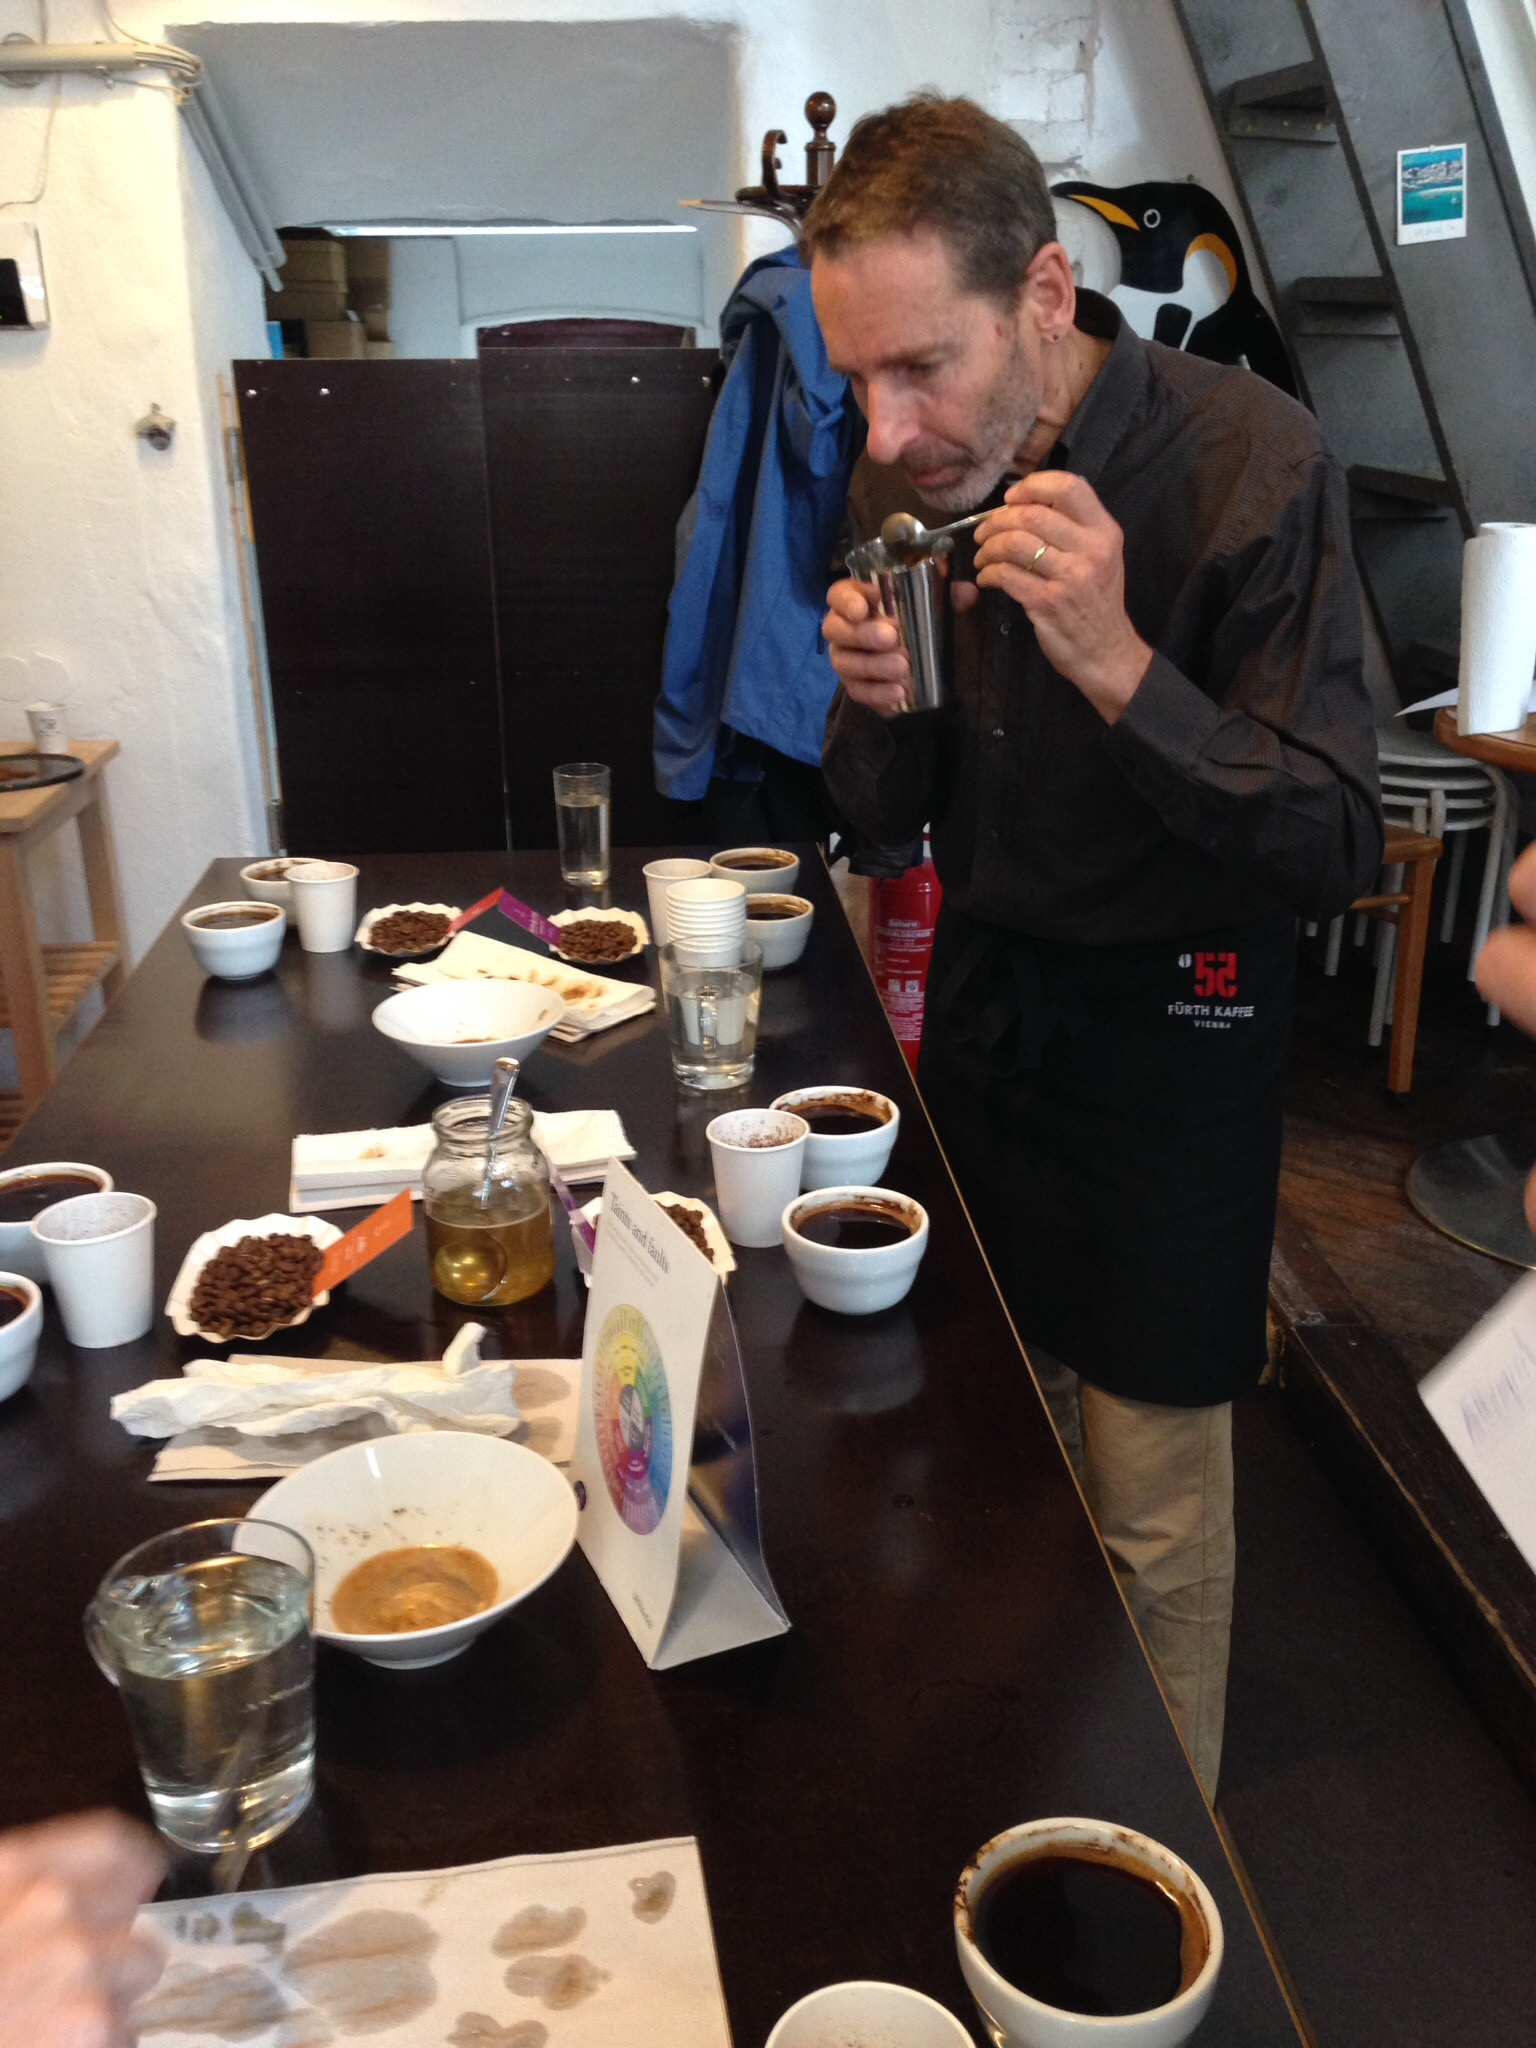 A Cupping Session in Vienna Furth Kaffee